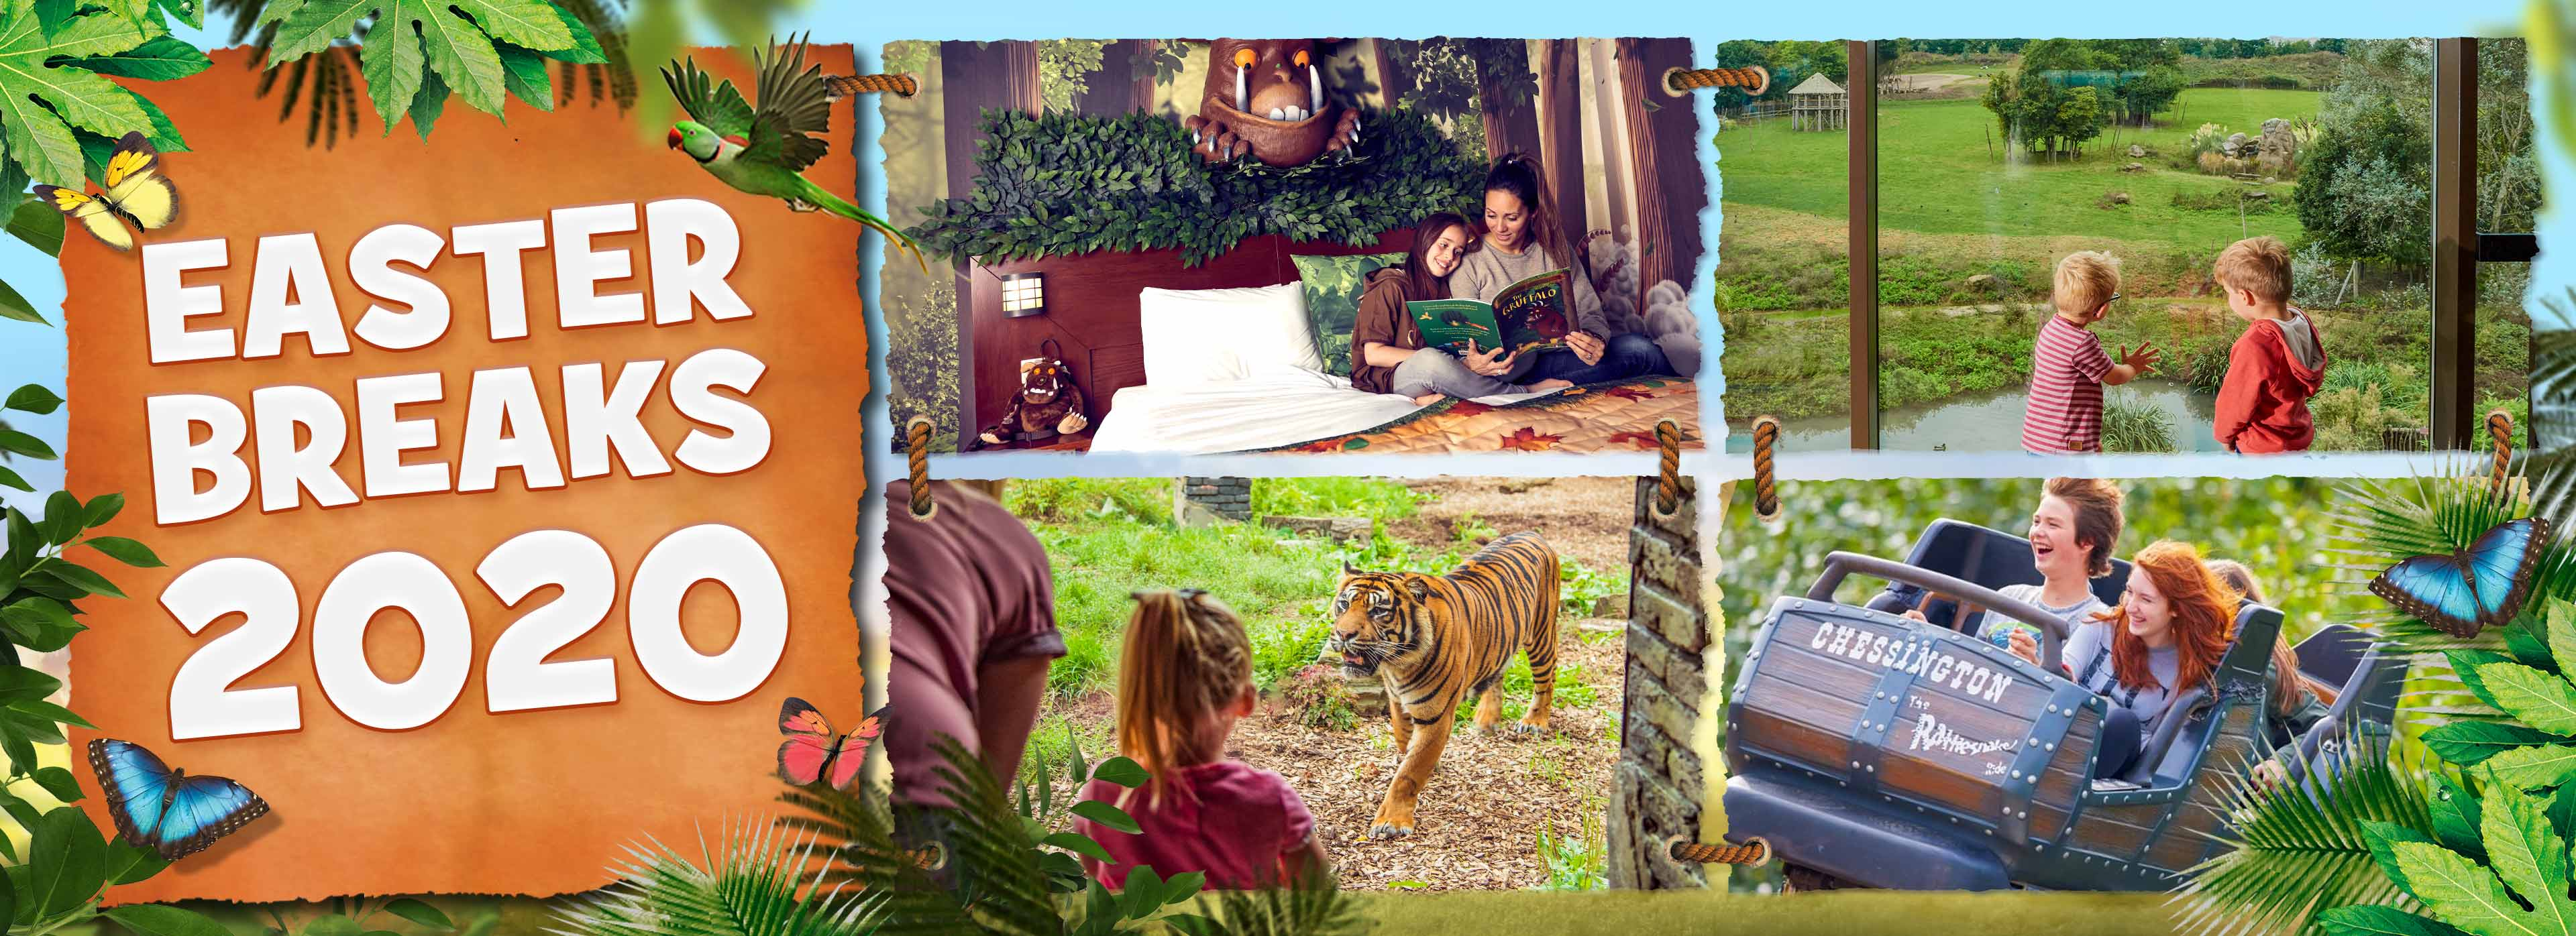 2020 Easter Breaks with Chessington Holidays